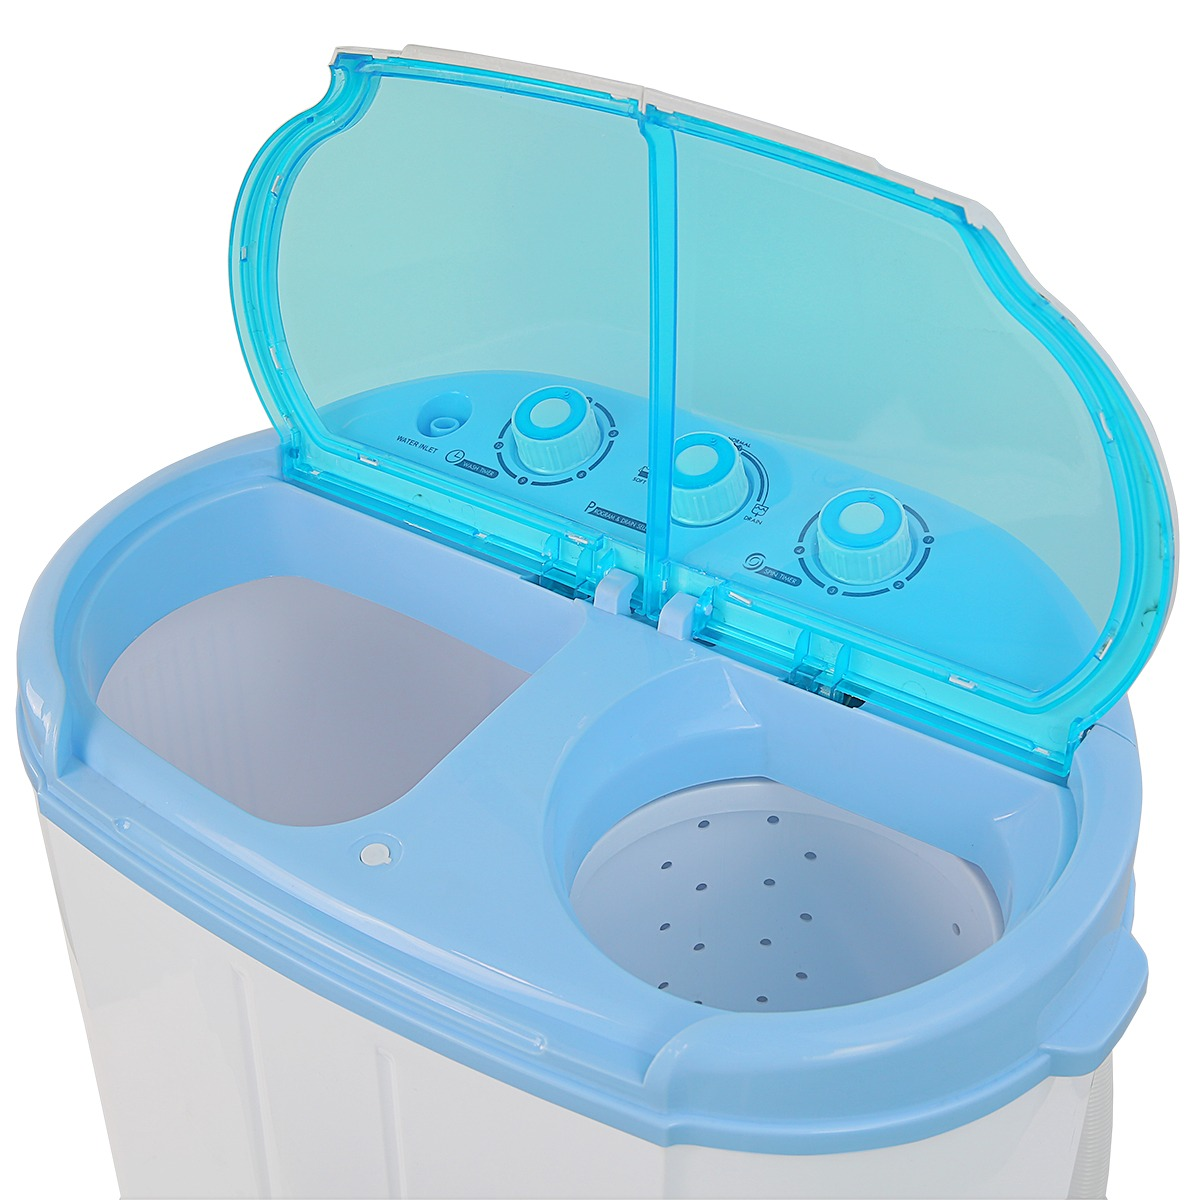 9LB MINI Washer And Spin Dryer Portable Compact Laundry Combo, With Hose    Walmart.com